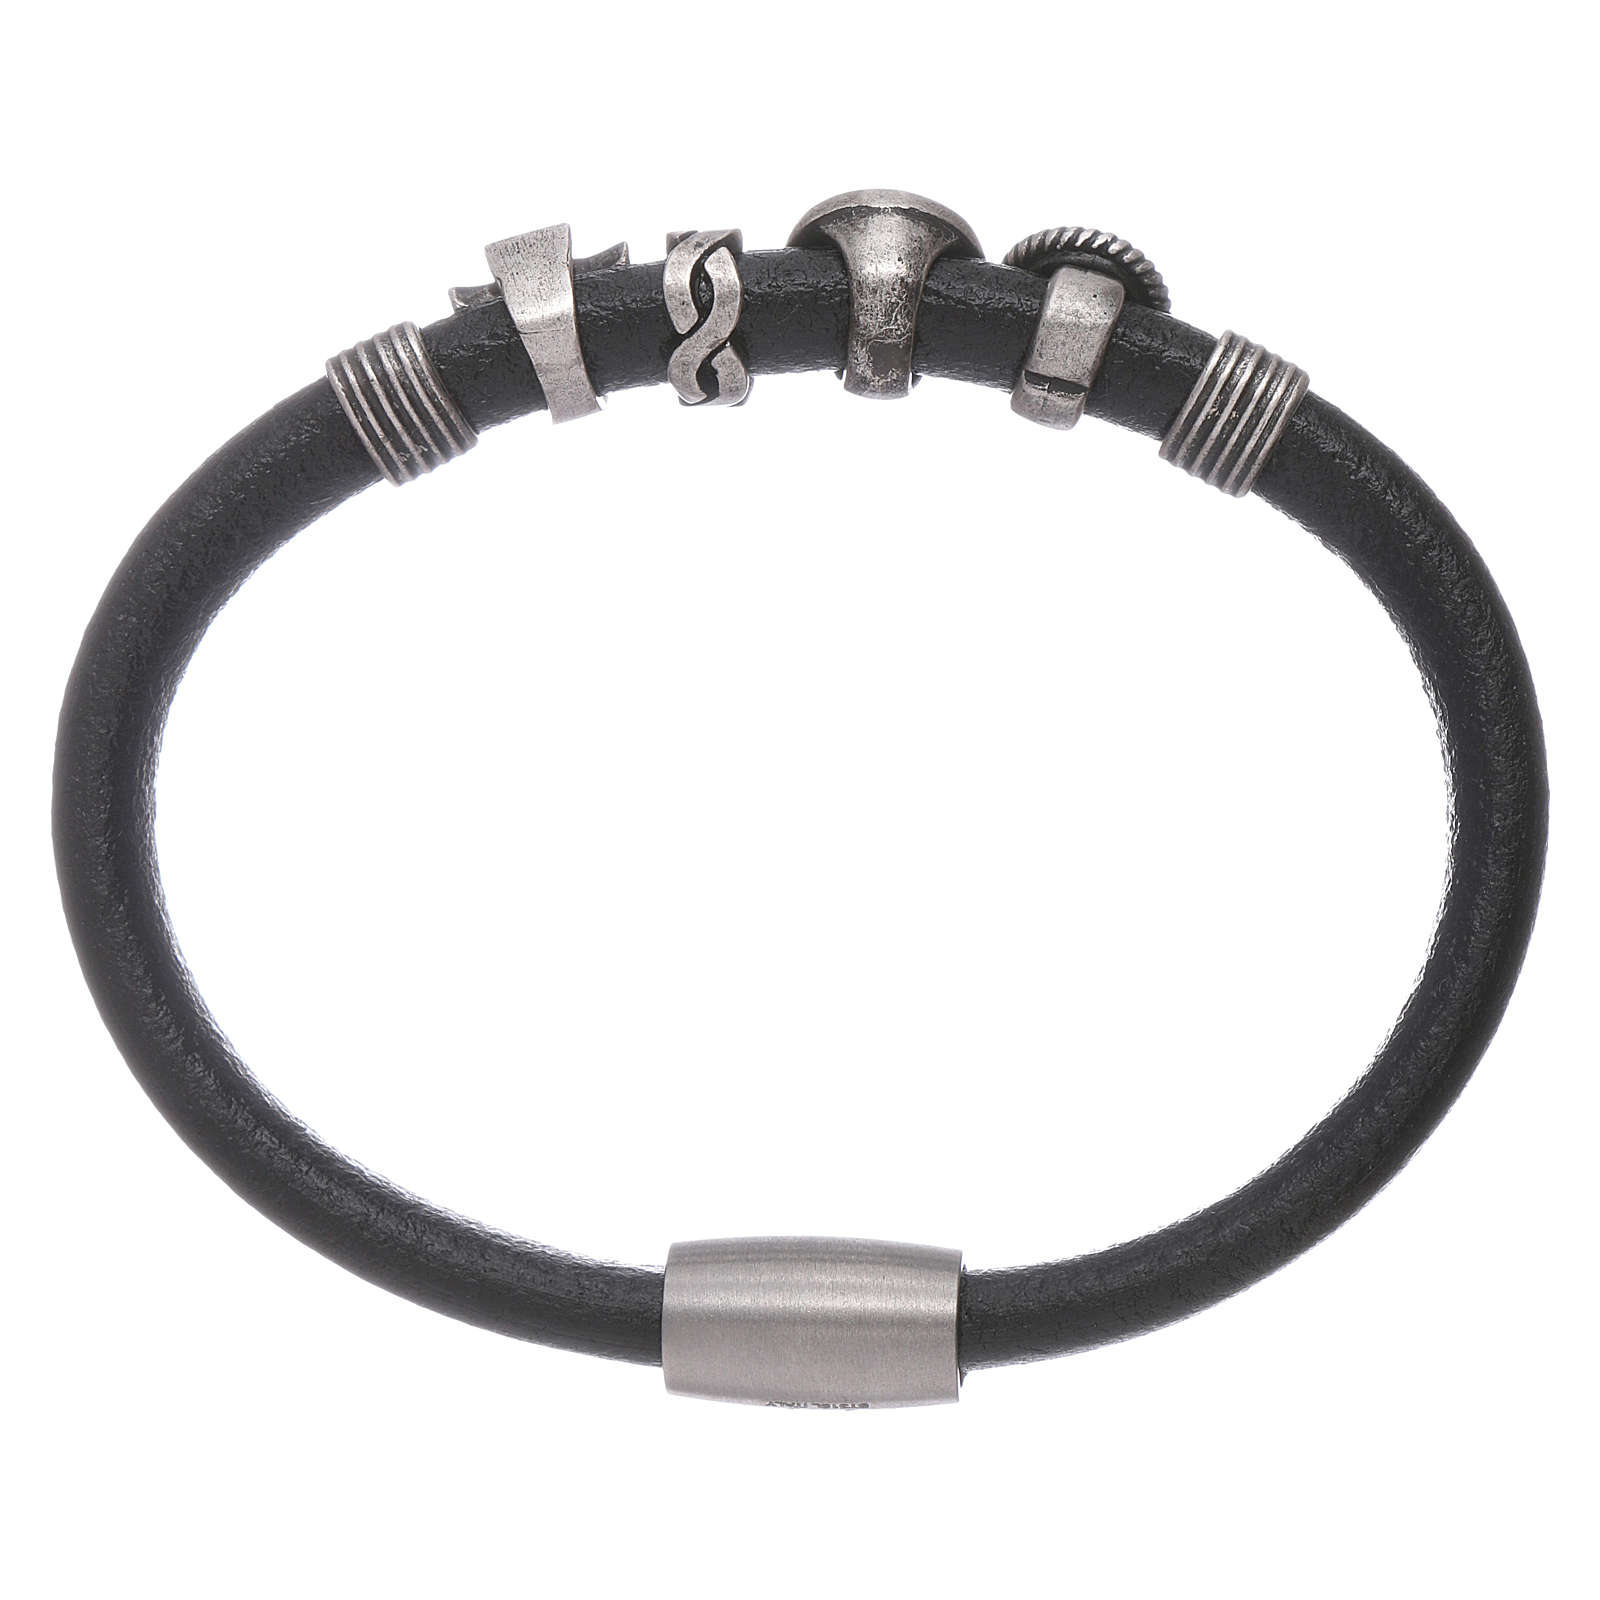 AMEN black leather bracelet with black zircon charms 4